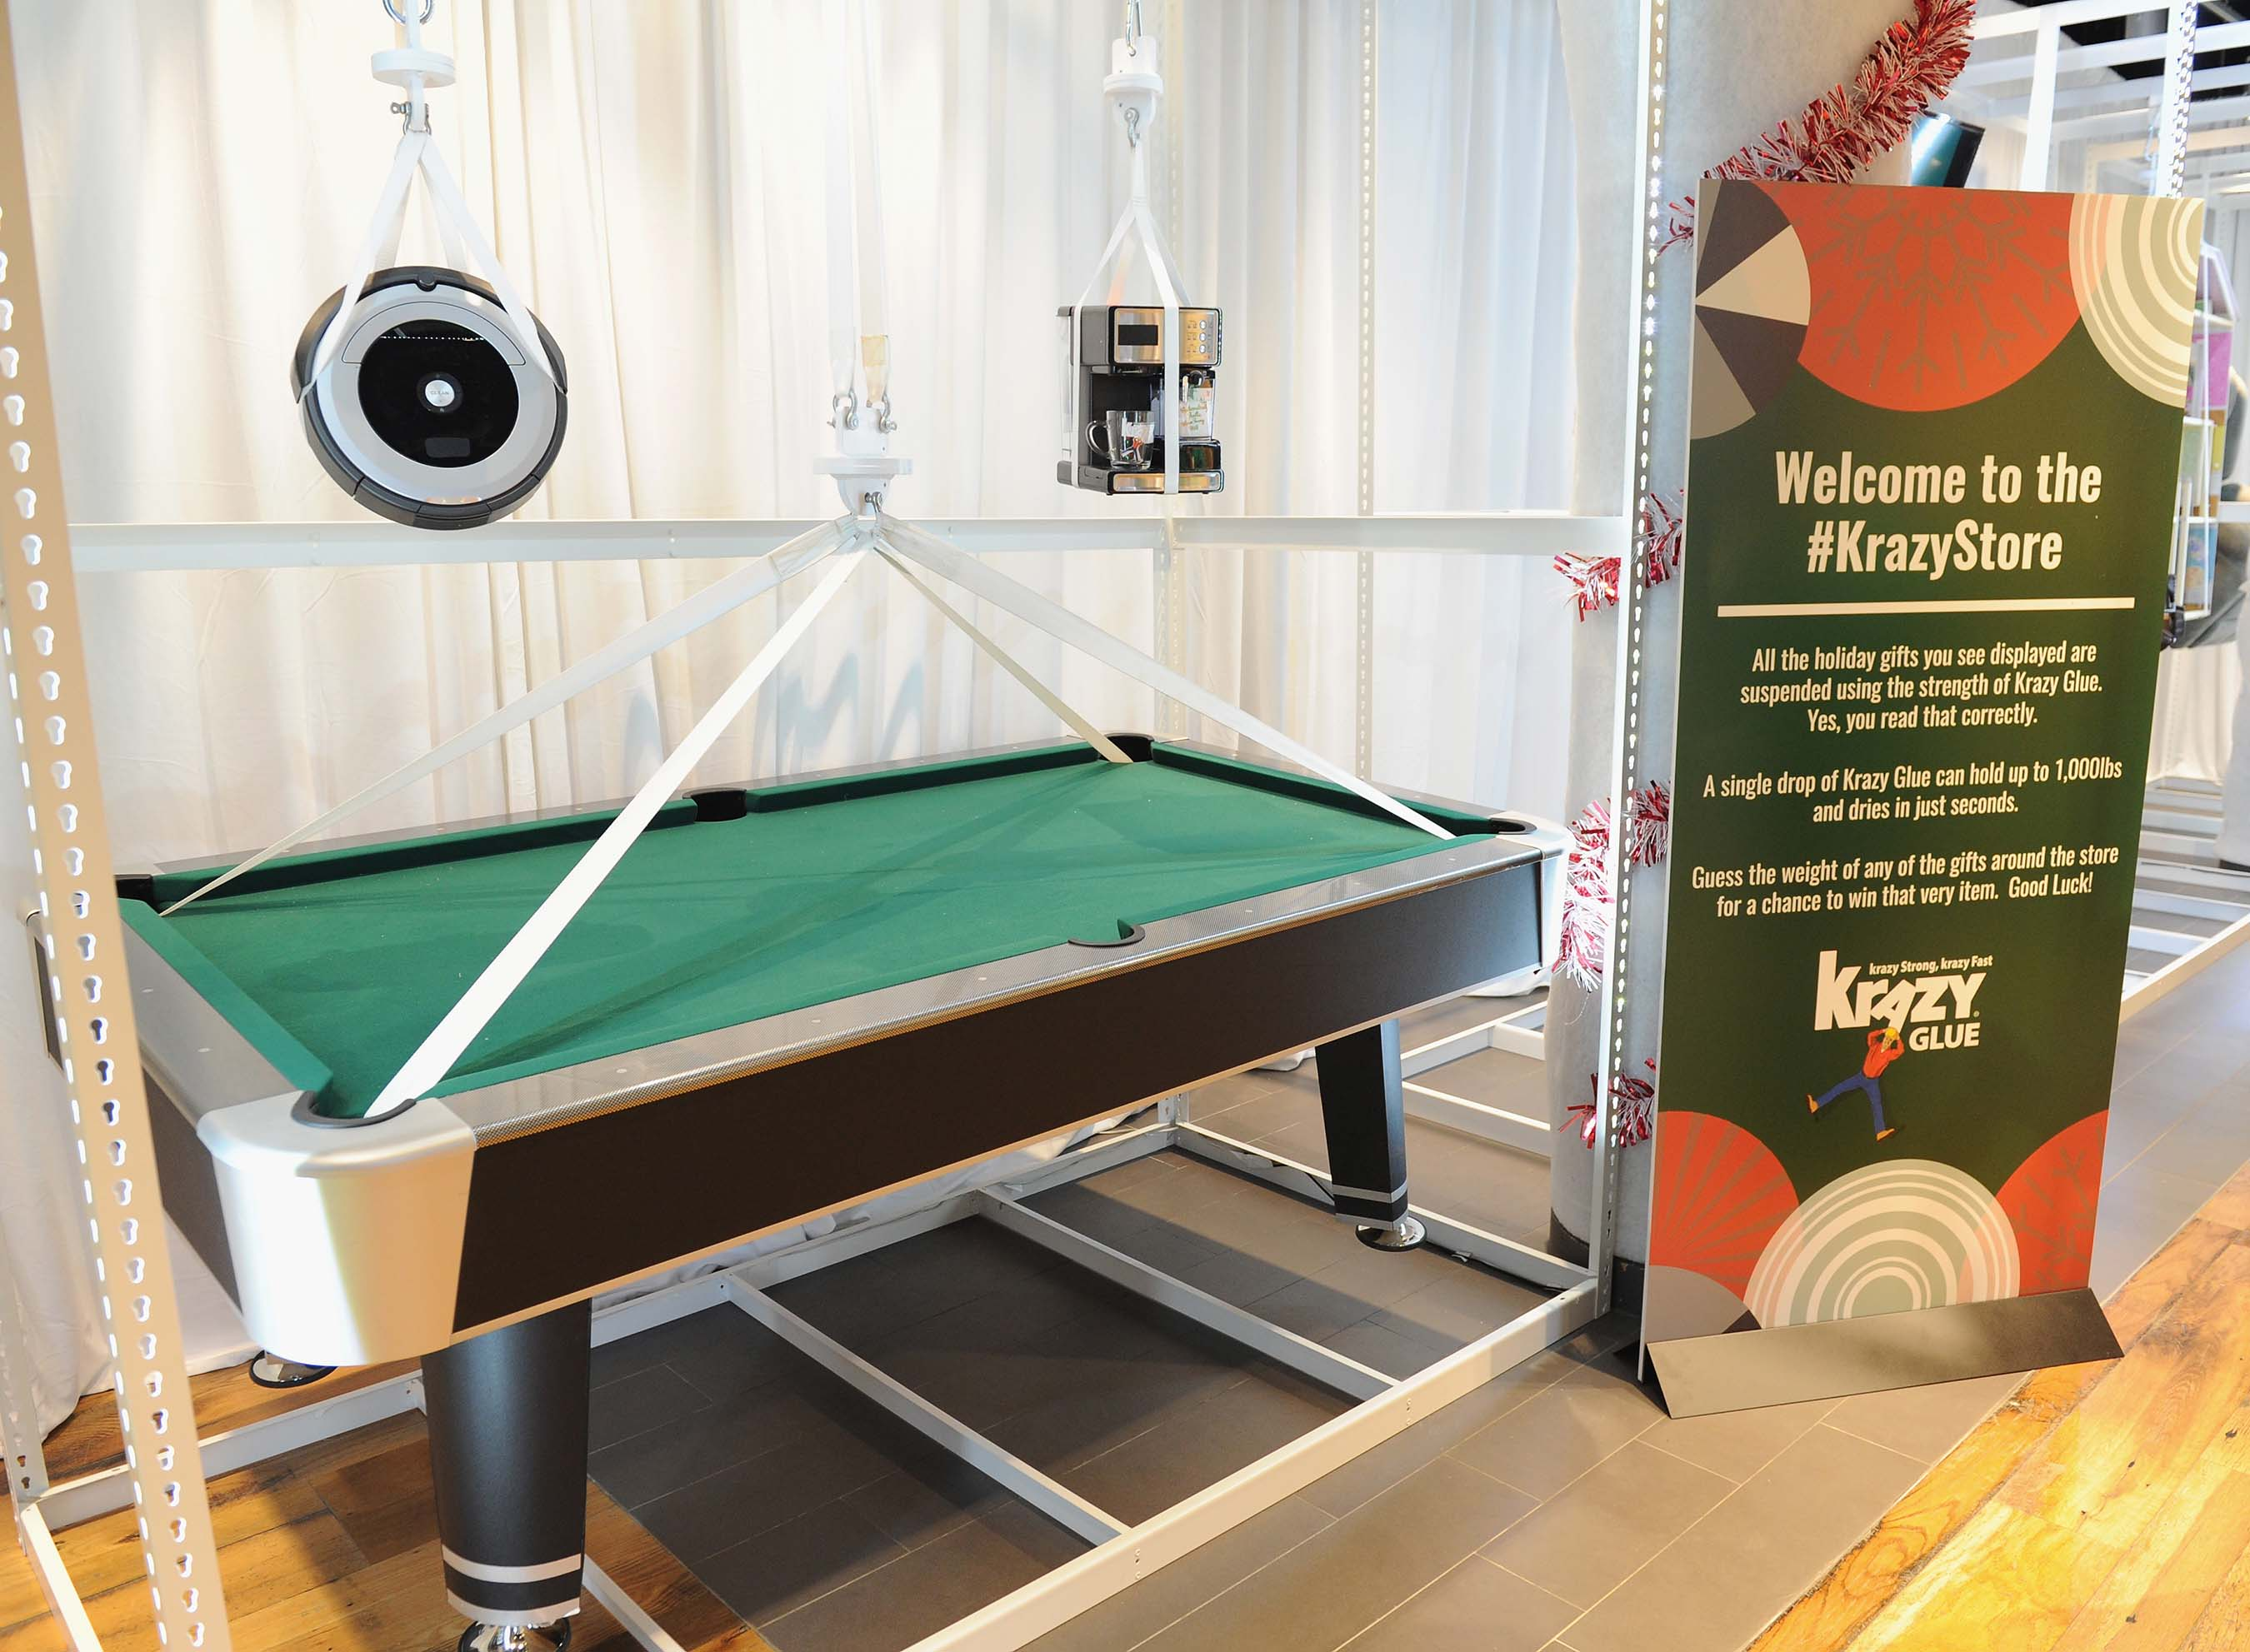 Did you know only a few drops of Krazy Glue® can hold up to 1,000 lbs.? Heavy gifts like a pool table, wine cooler and more were suspended on display at the Krazy Store using Krazy Glue.